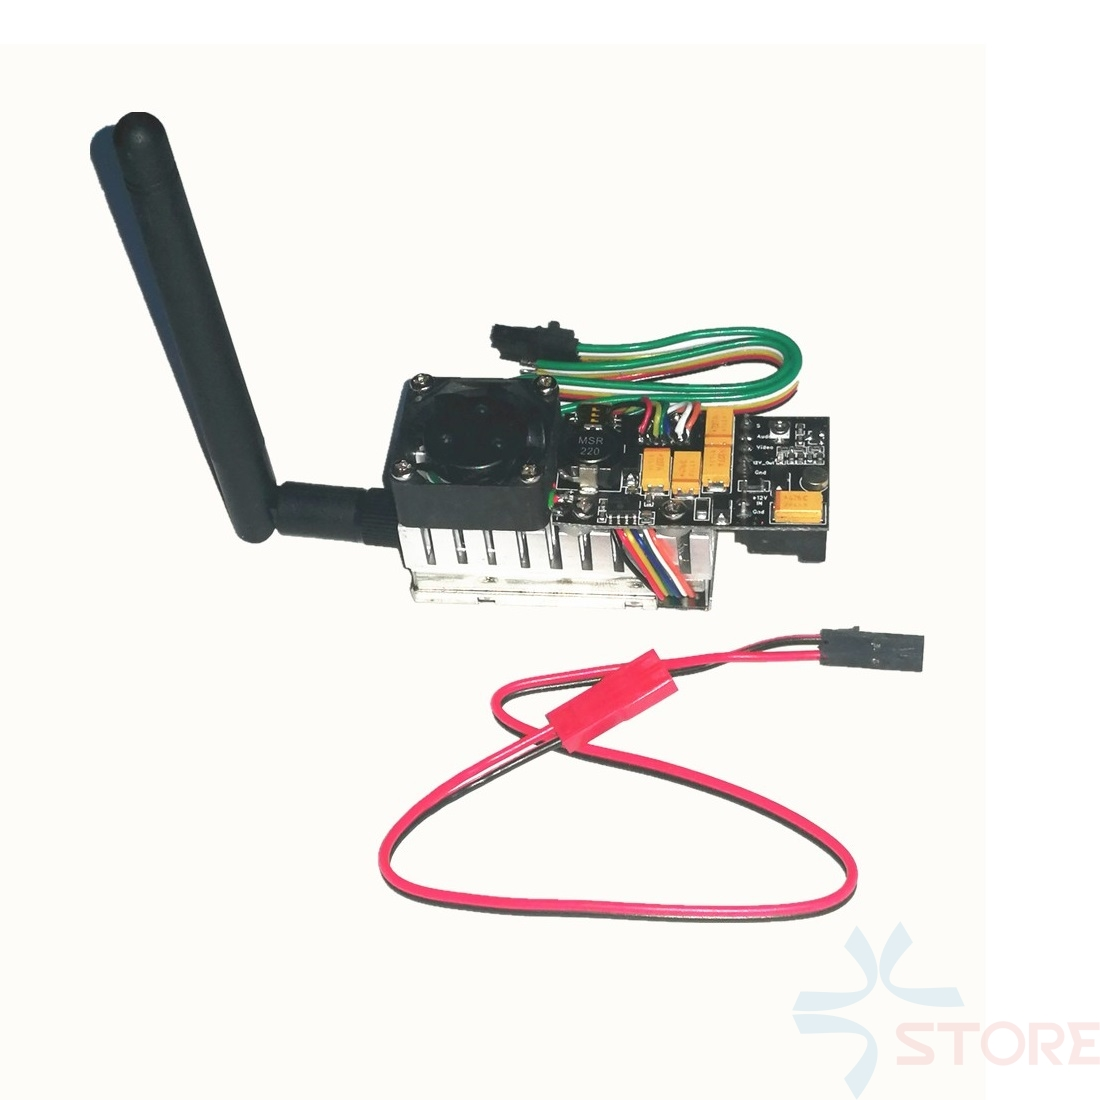 Over 2Km Range 5.8Ghz 2W FPV Wireless Transmitter TS582000 5.8G 2000MW 8CH Video AV Audio Sender орбитальная эксцентриковая шлифмашина bosch gbr 15 cag l boxx по бетону 0 601 776 001